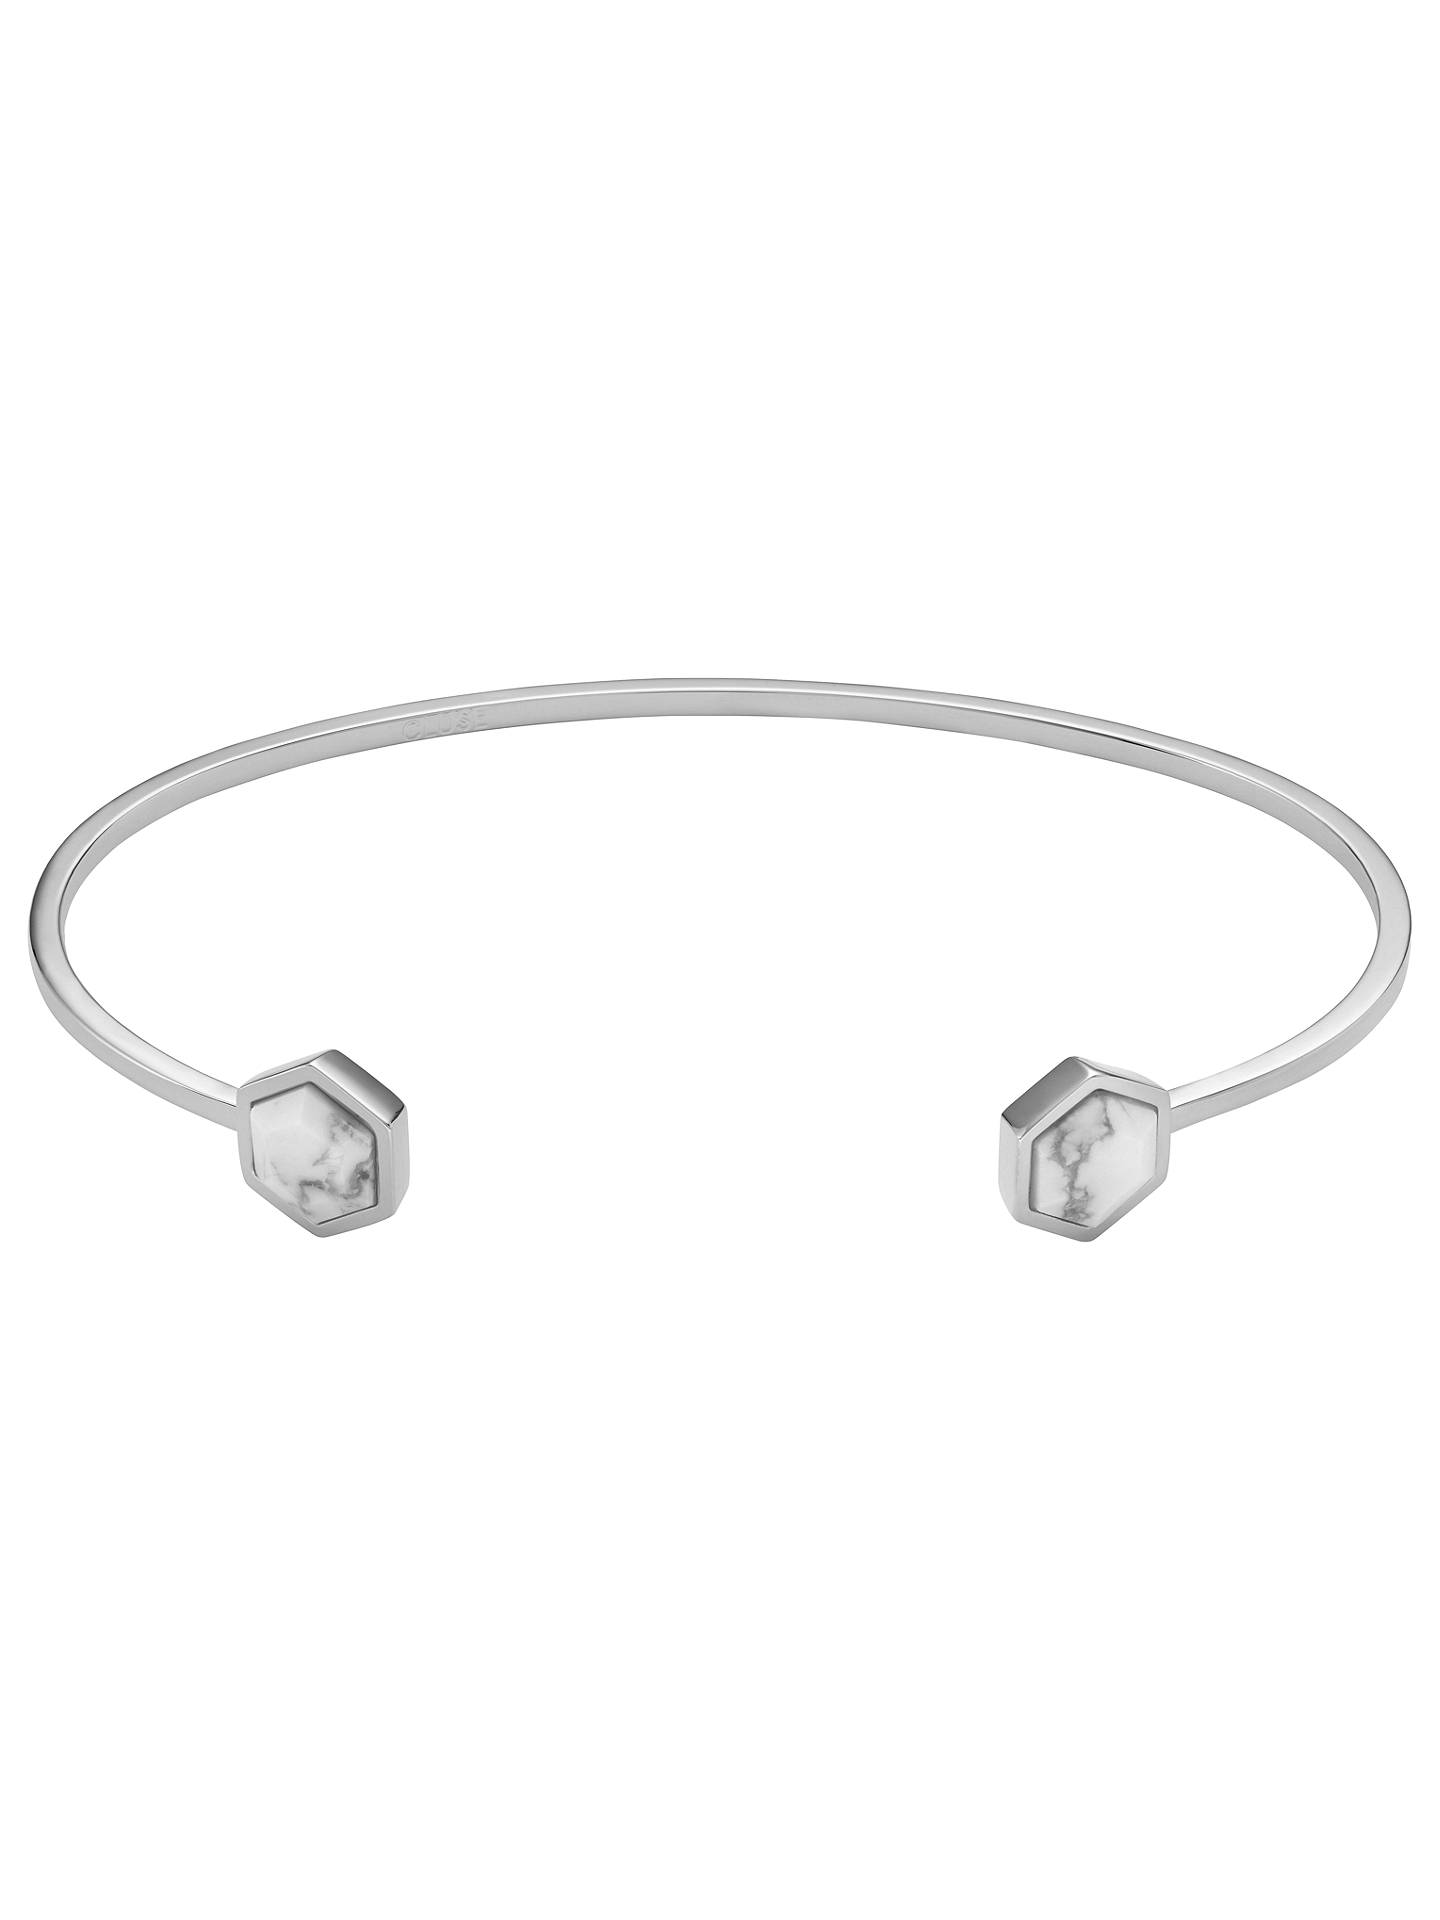 BuyCLUSE Hexagonal Open Bangle, Silver Online at johnlewis.com